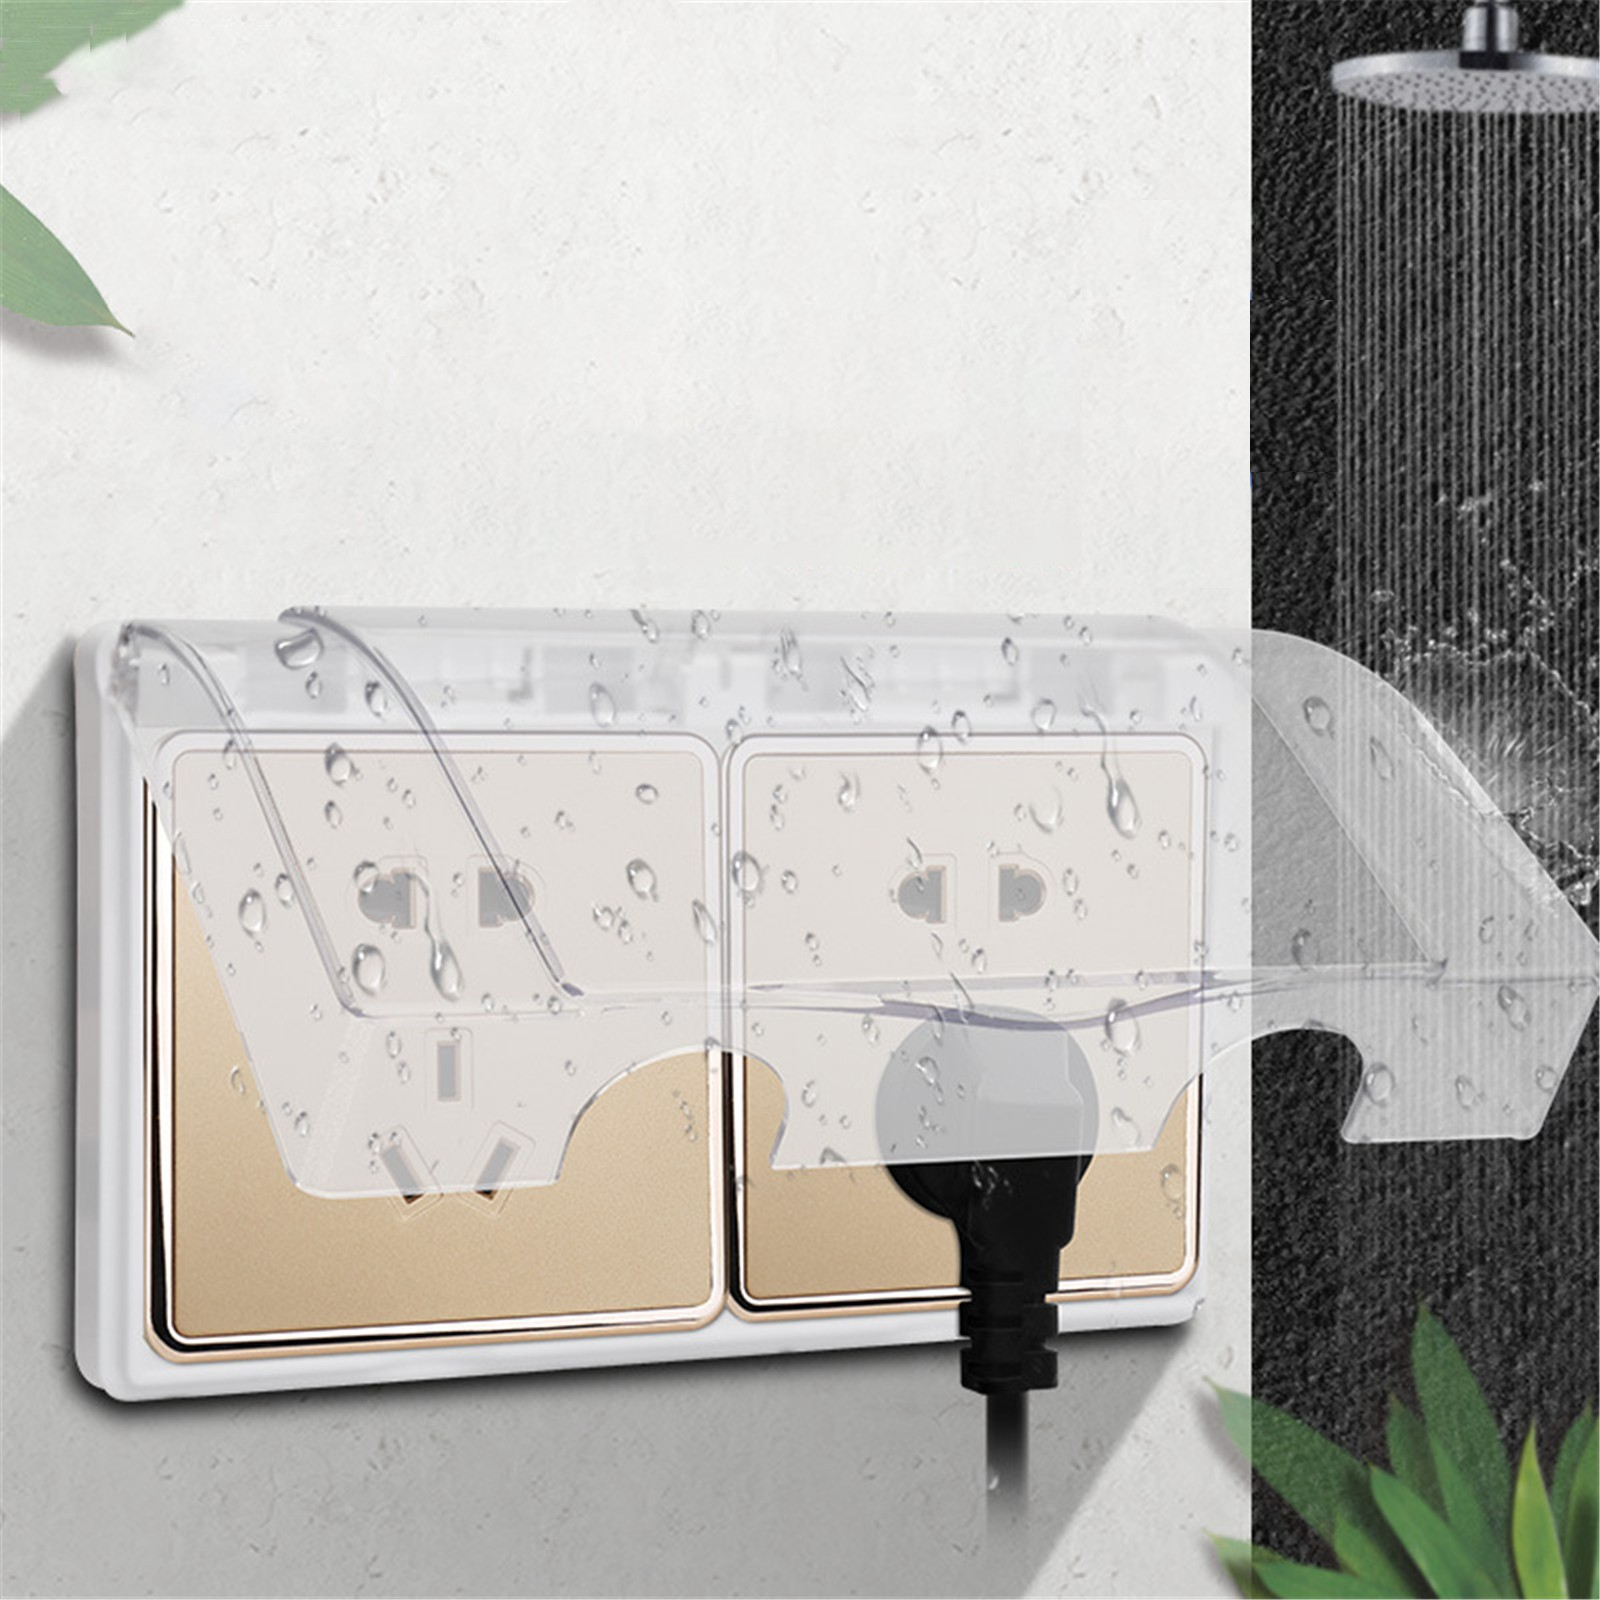 Type 86 Splashproof Box Adhesive Transparent Socket Protective Cover Switch Waterproof Dust-Proof High Quality Household Tool#35